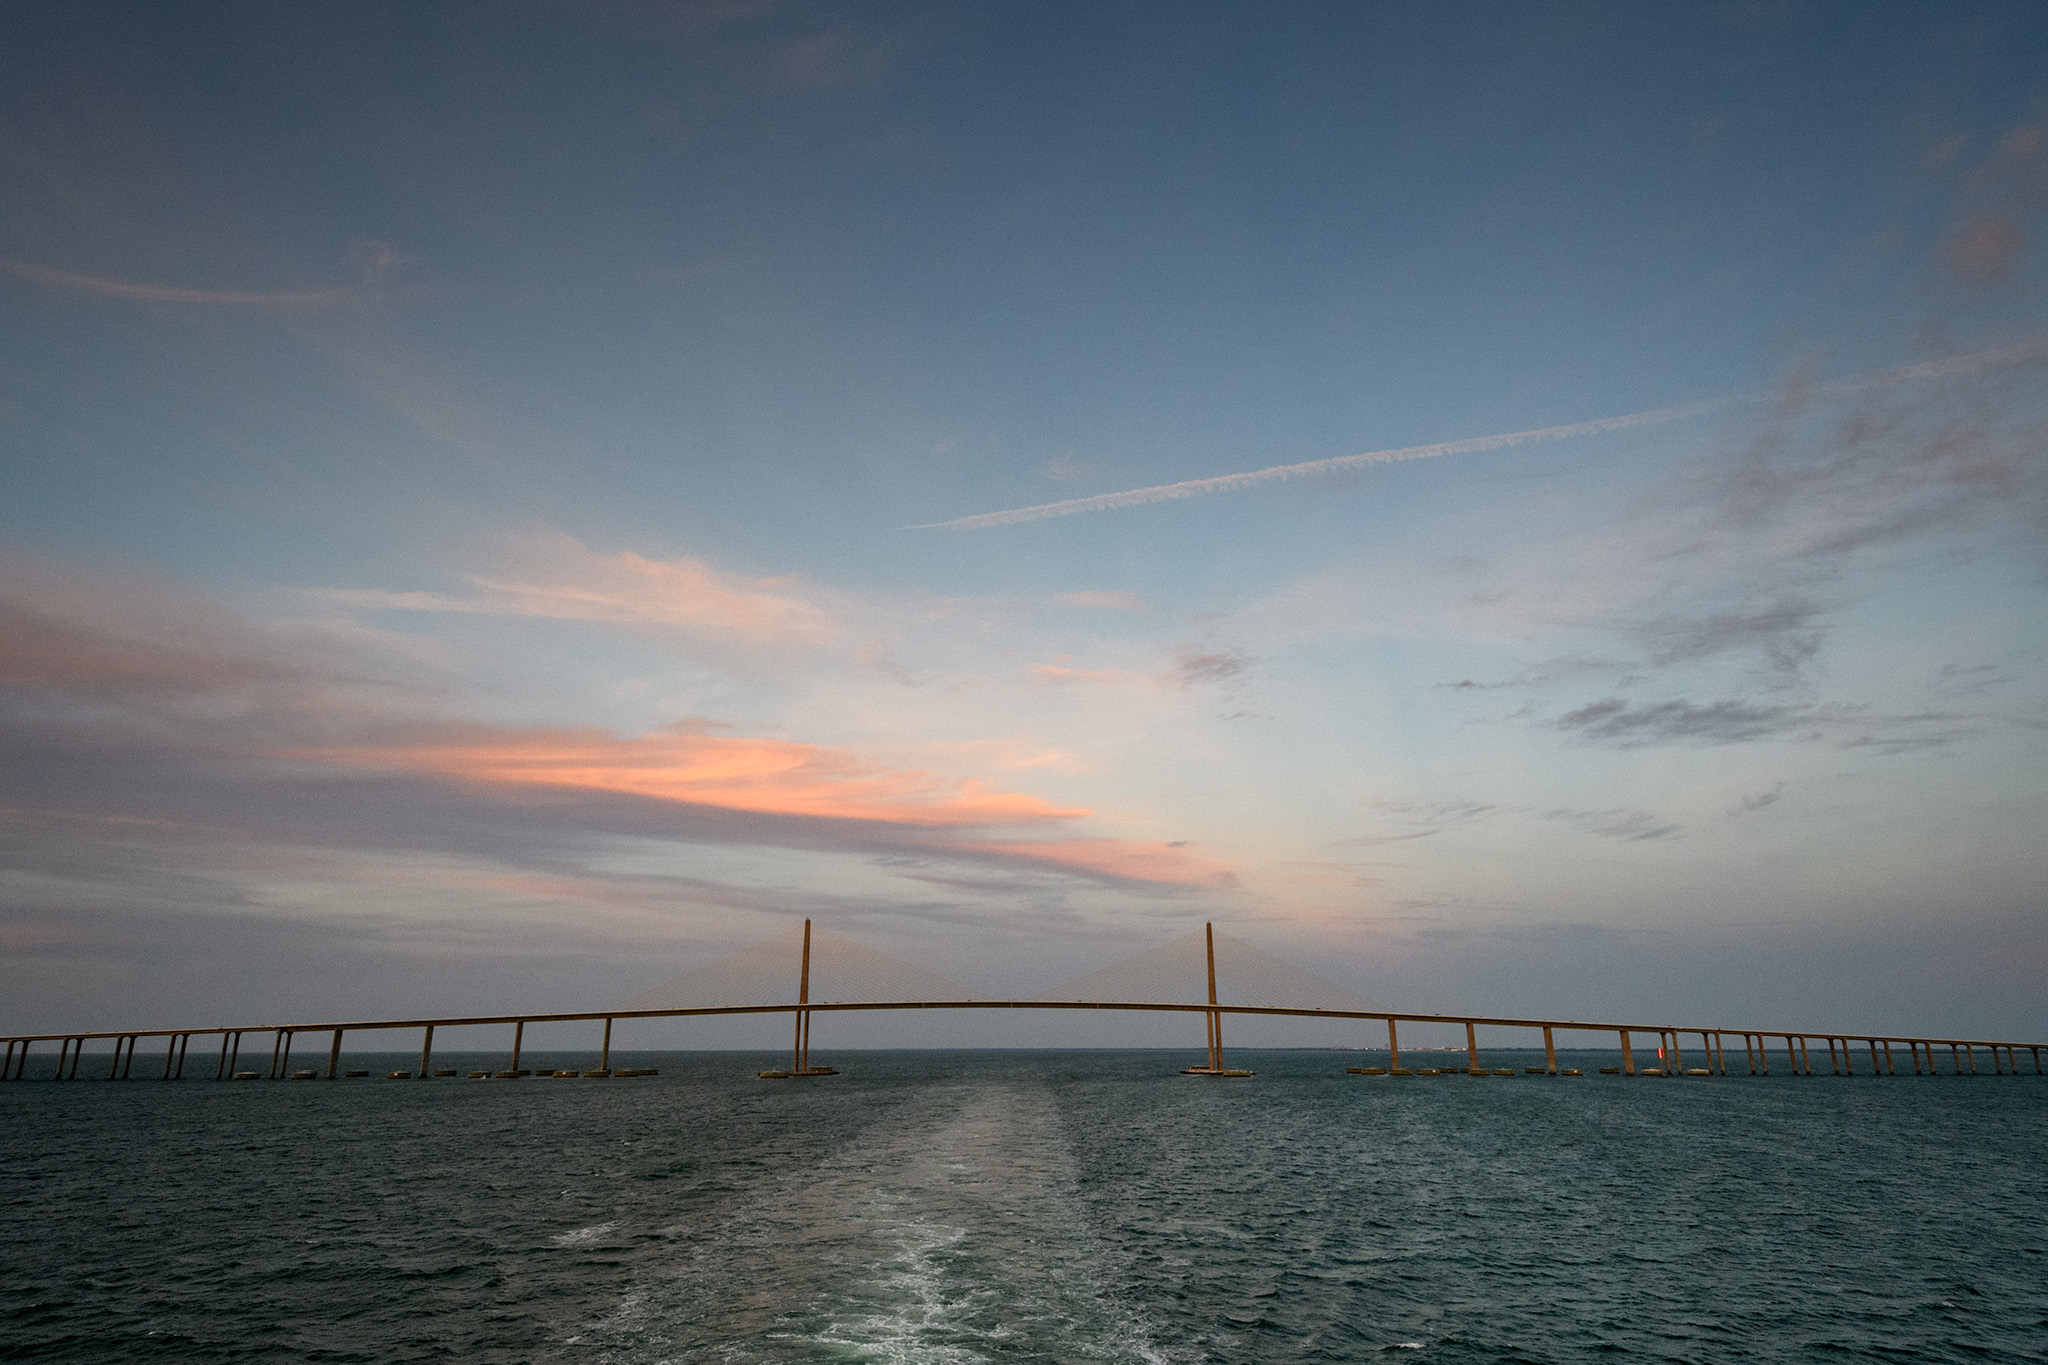 By the Skyway Bridge and headed into the Gulf of Mexico!